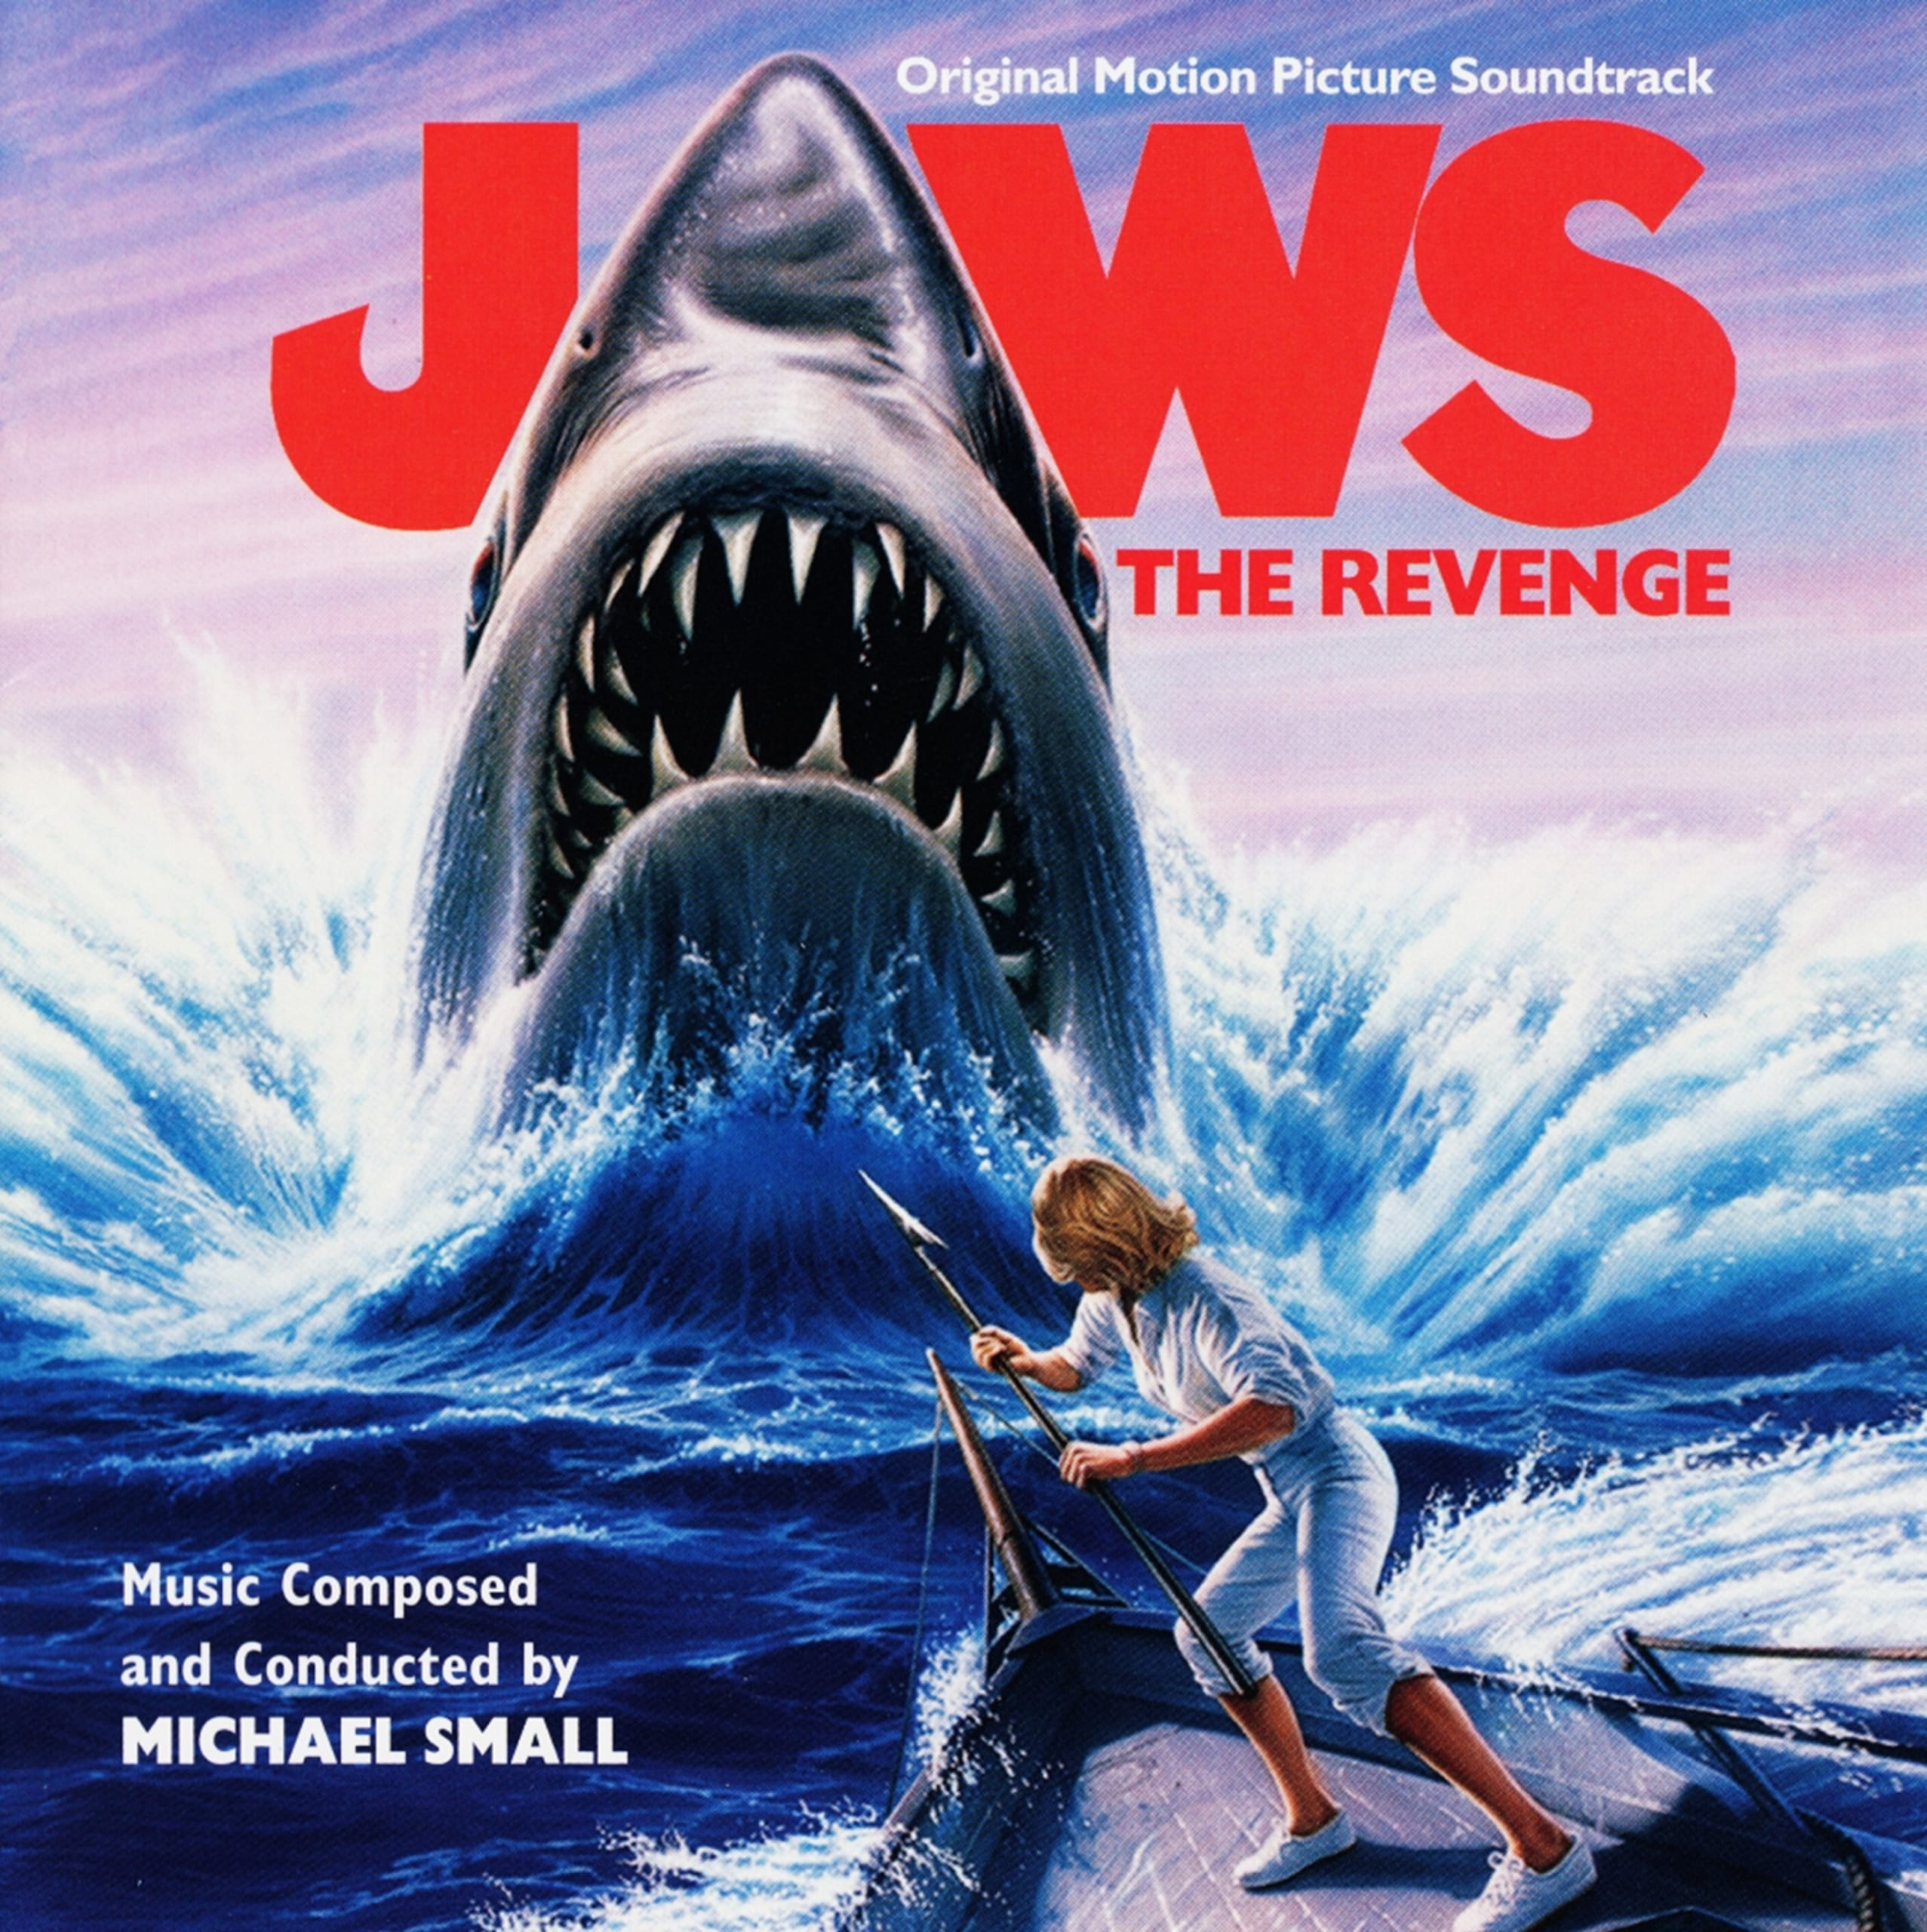 Jaws: The Revenge - Original Motion Picture Soundtrack (COMPLETE SCORE) (1997 / 2015) CD 6